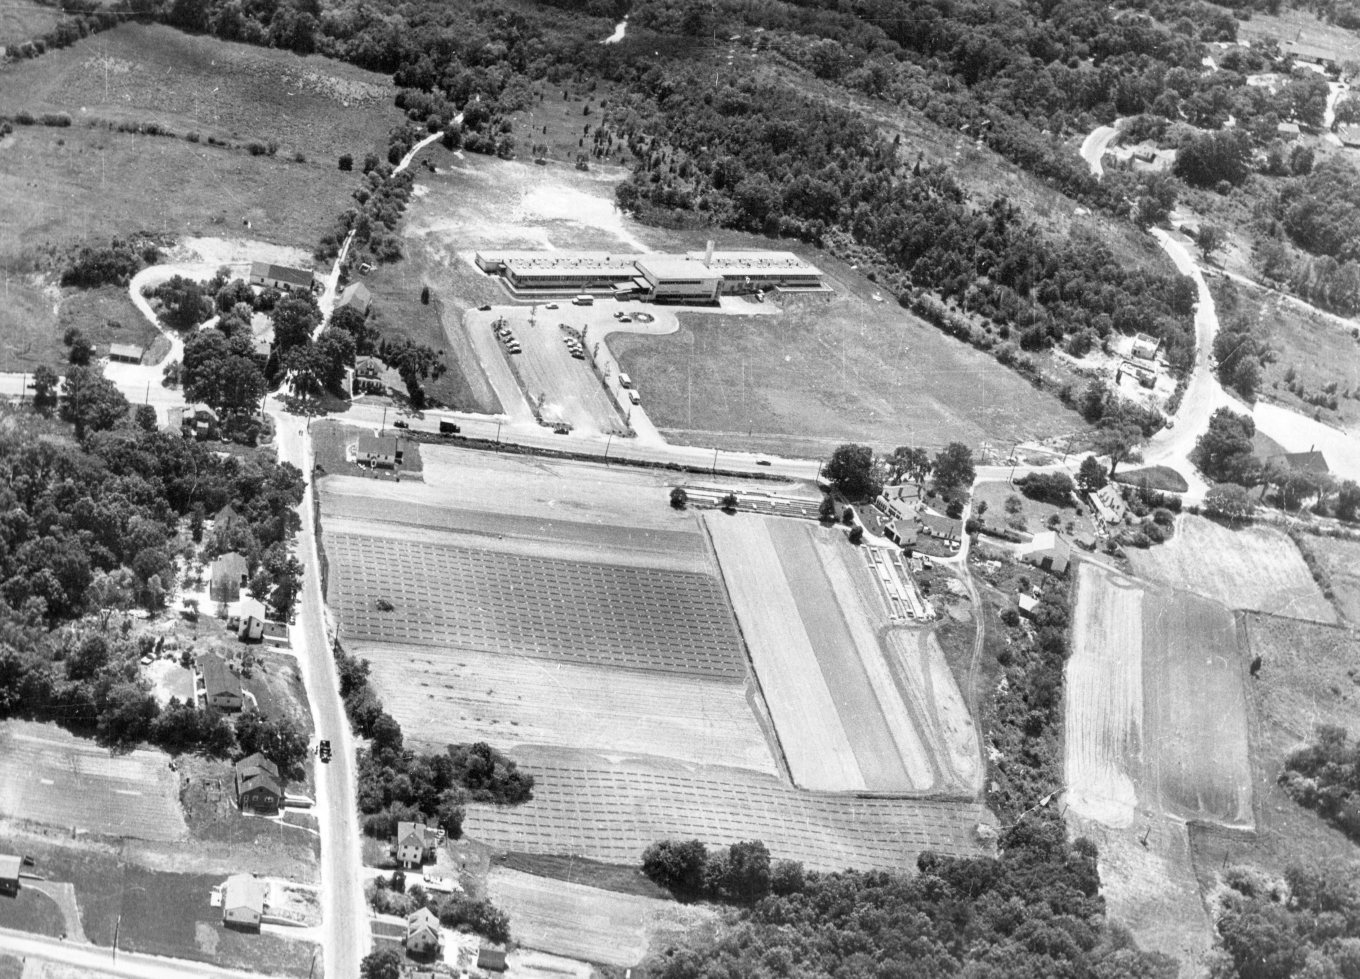 1954 Memorial School aerial, Burlington, MA